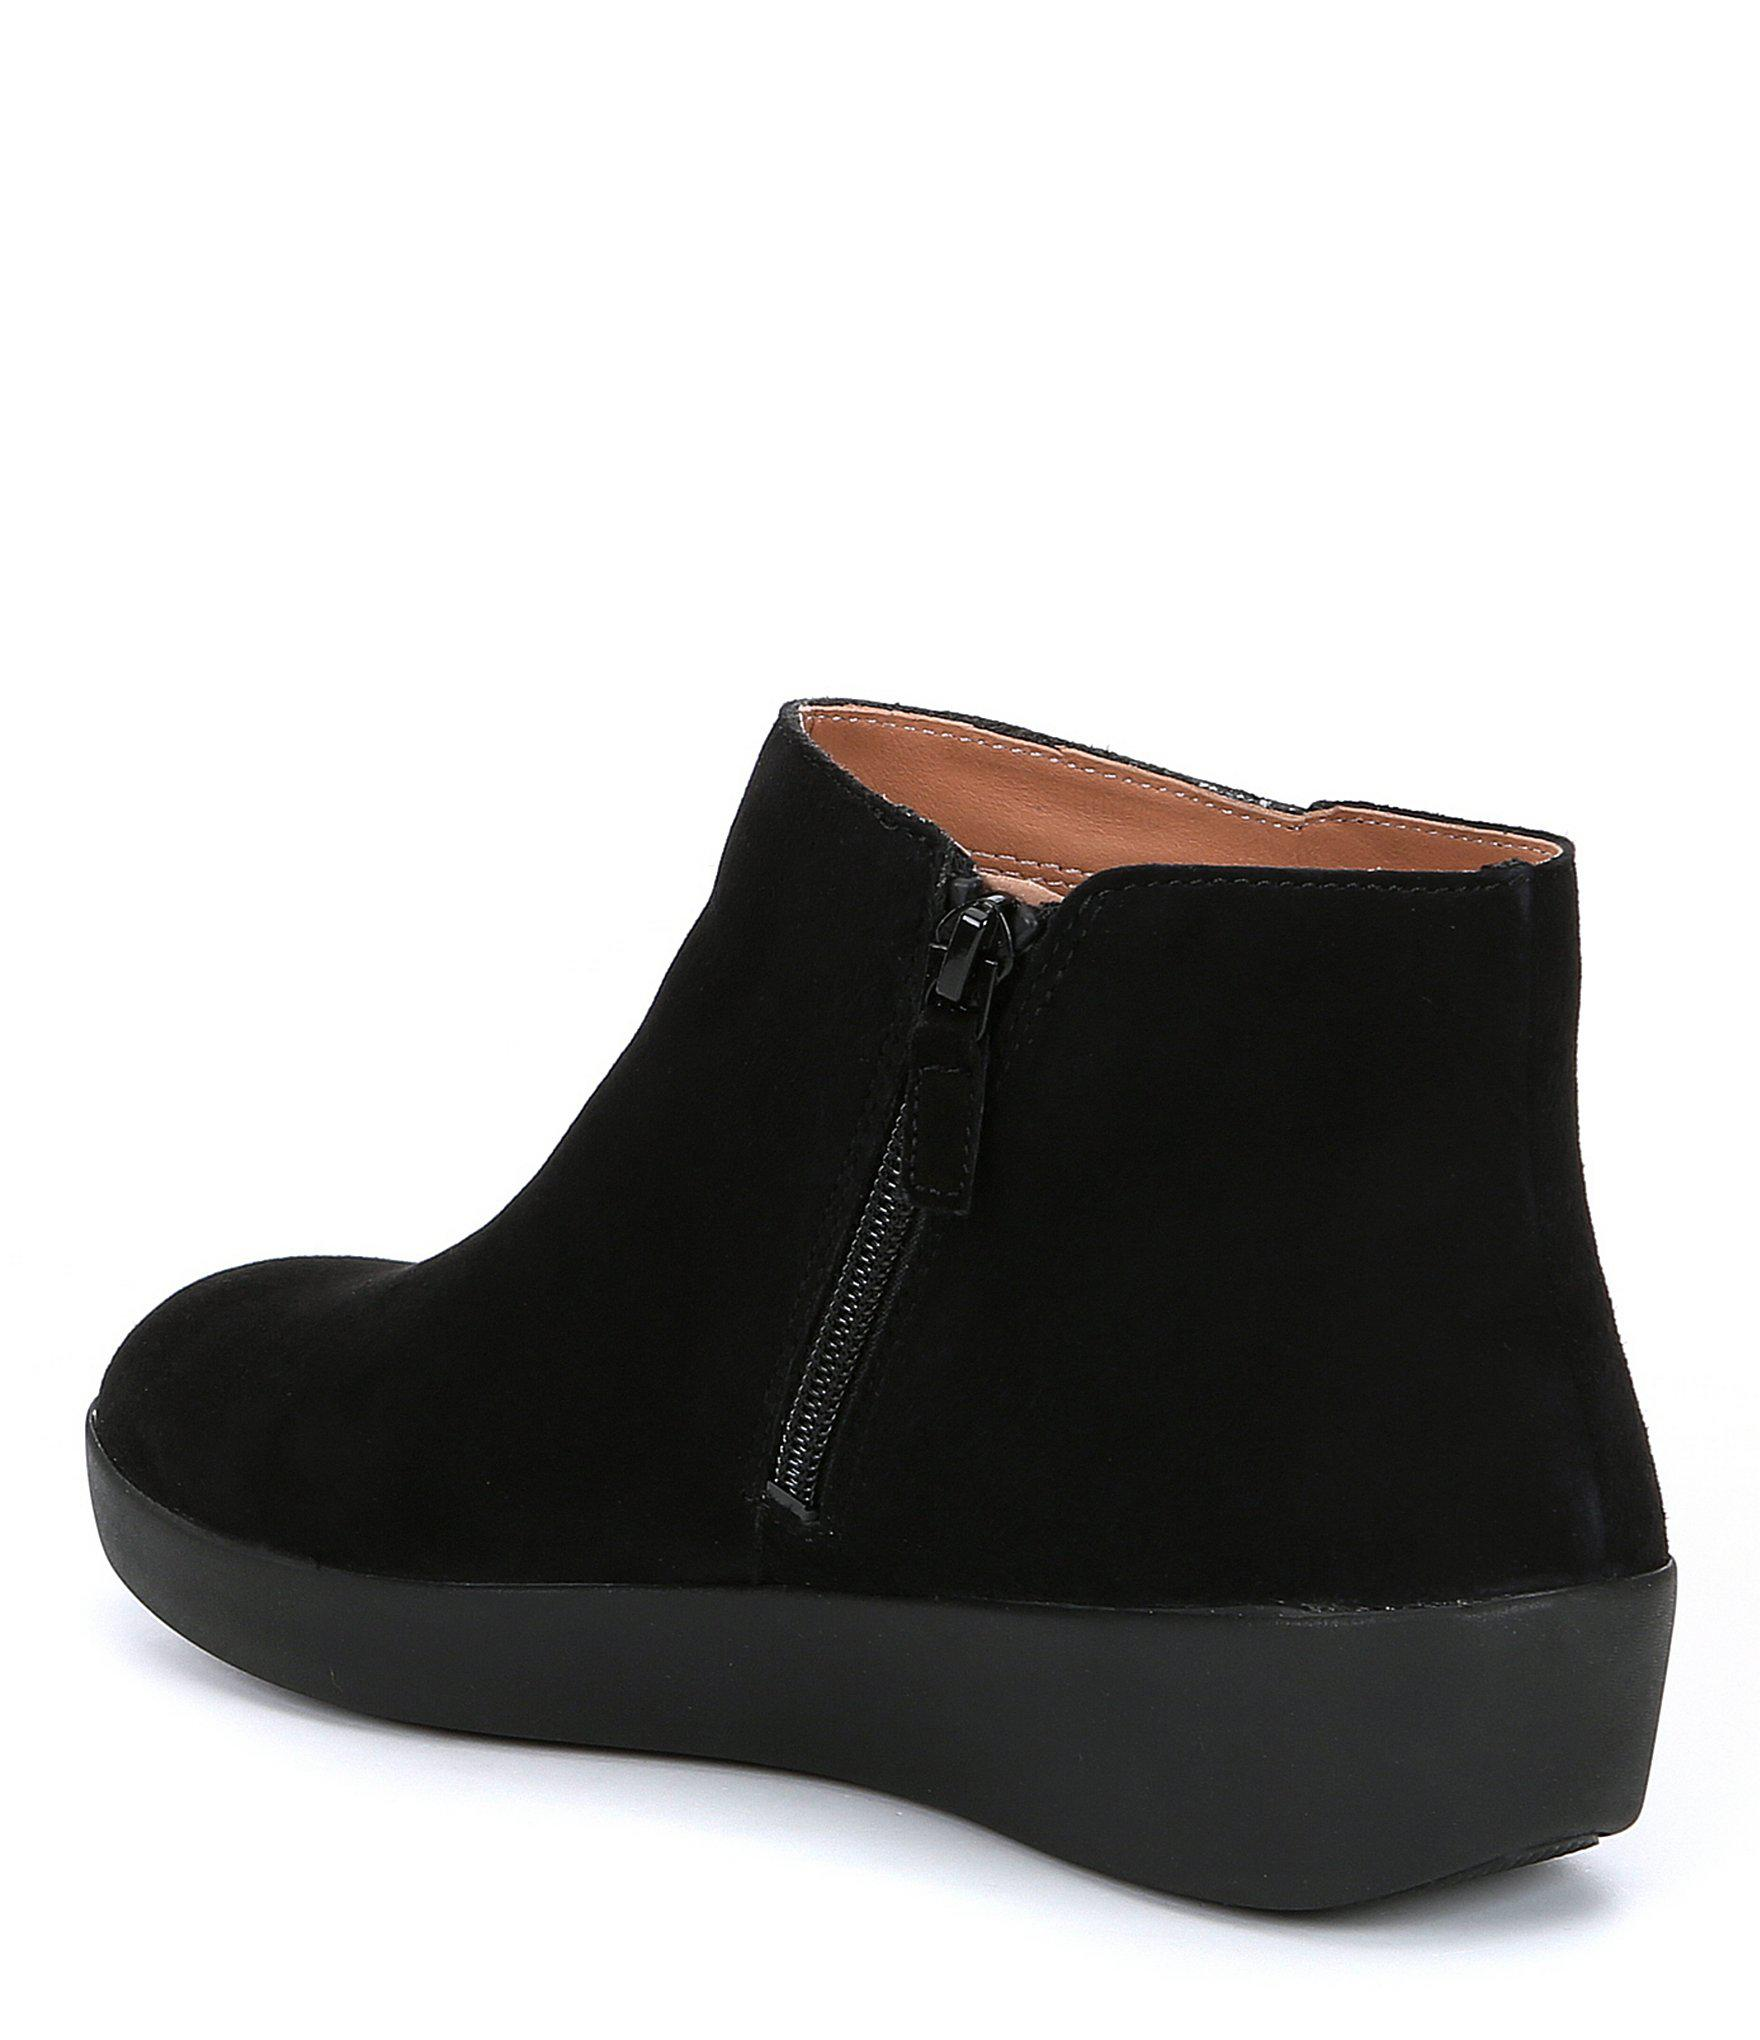 cc84db2f9 Lyst - Fitflop Sumi Suede Booties in Black